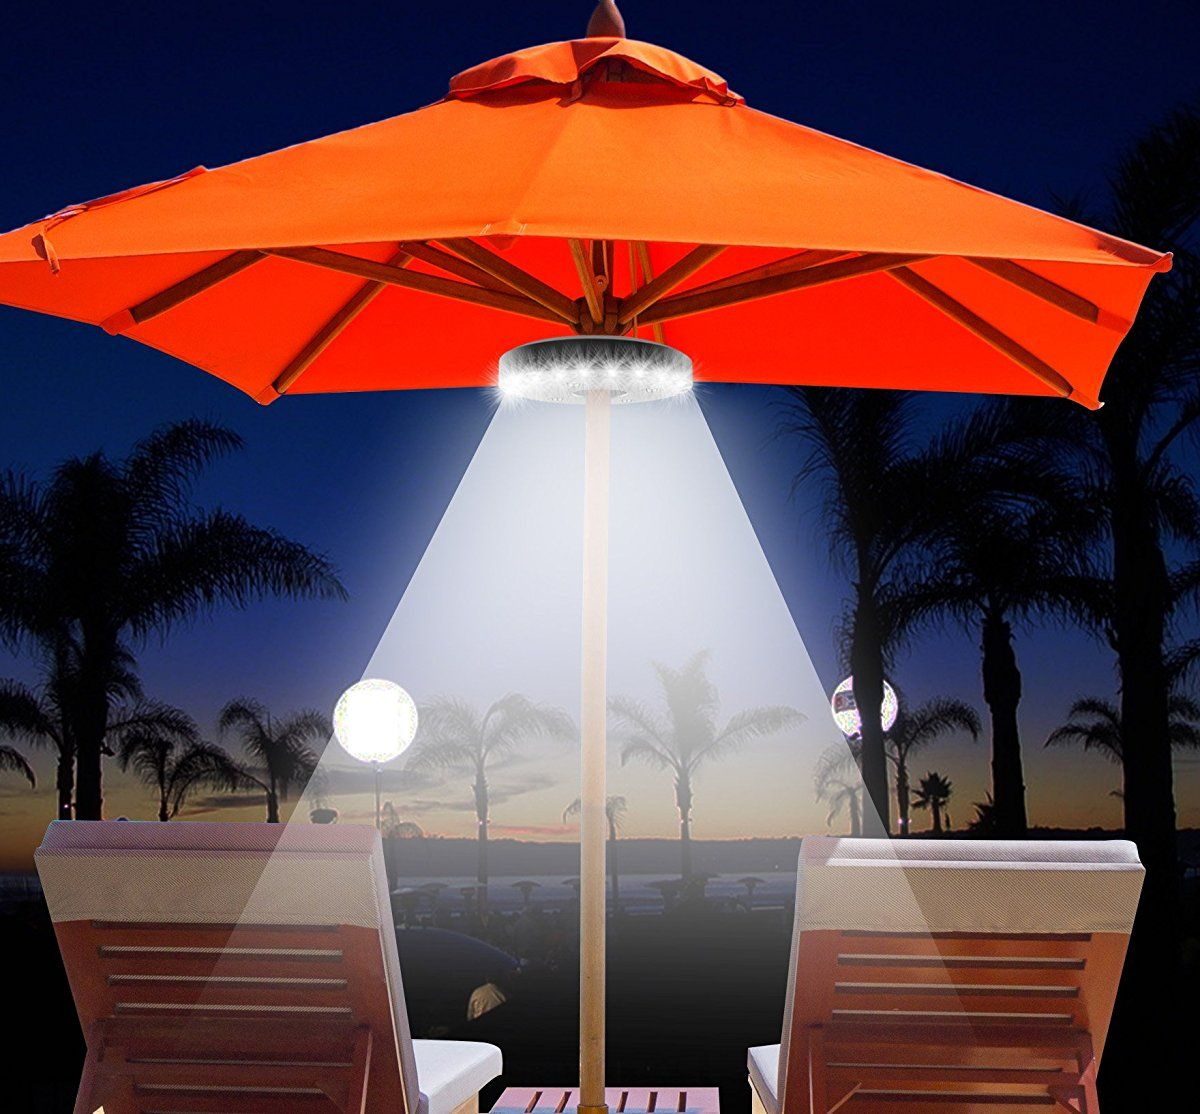 How To Use Umbrella Lights Mesmerizing Umbrella Pole Light For Patio Umbrellas Camping Tents Or Outdoor Design Inspiration